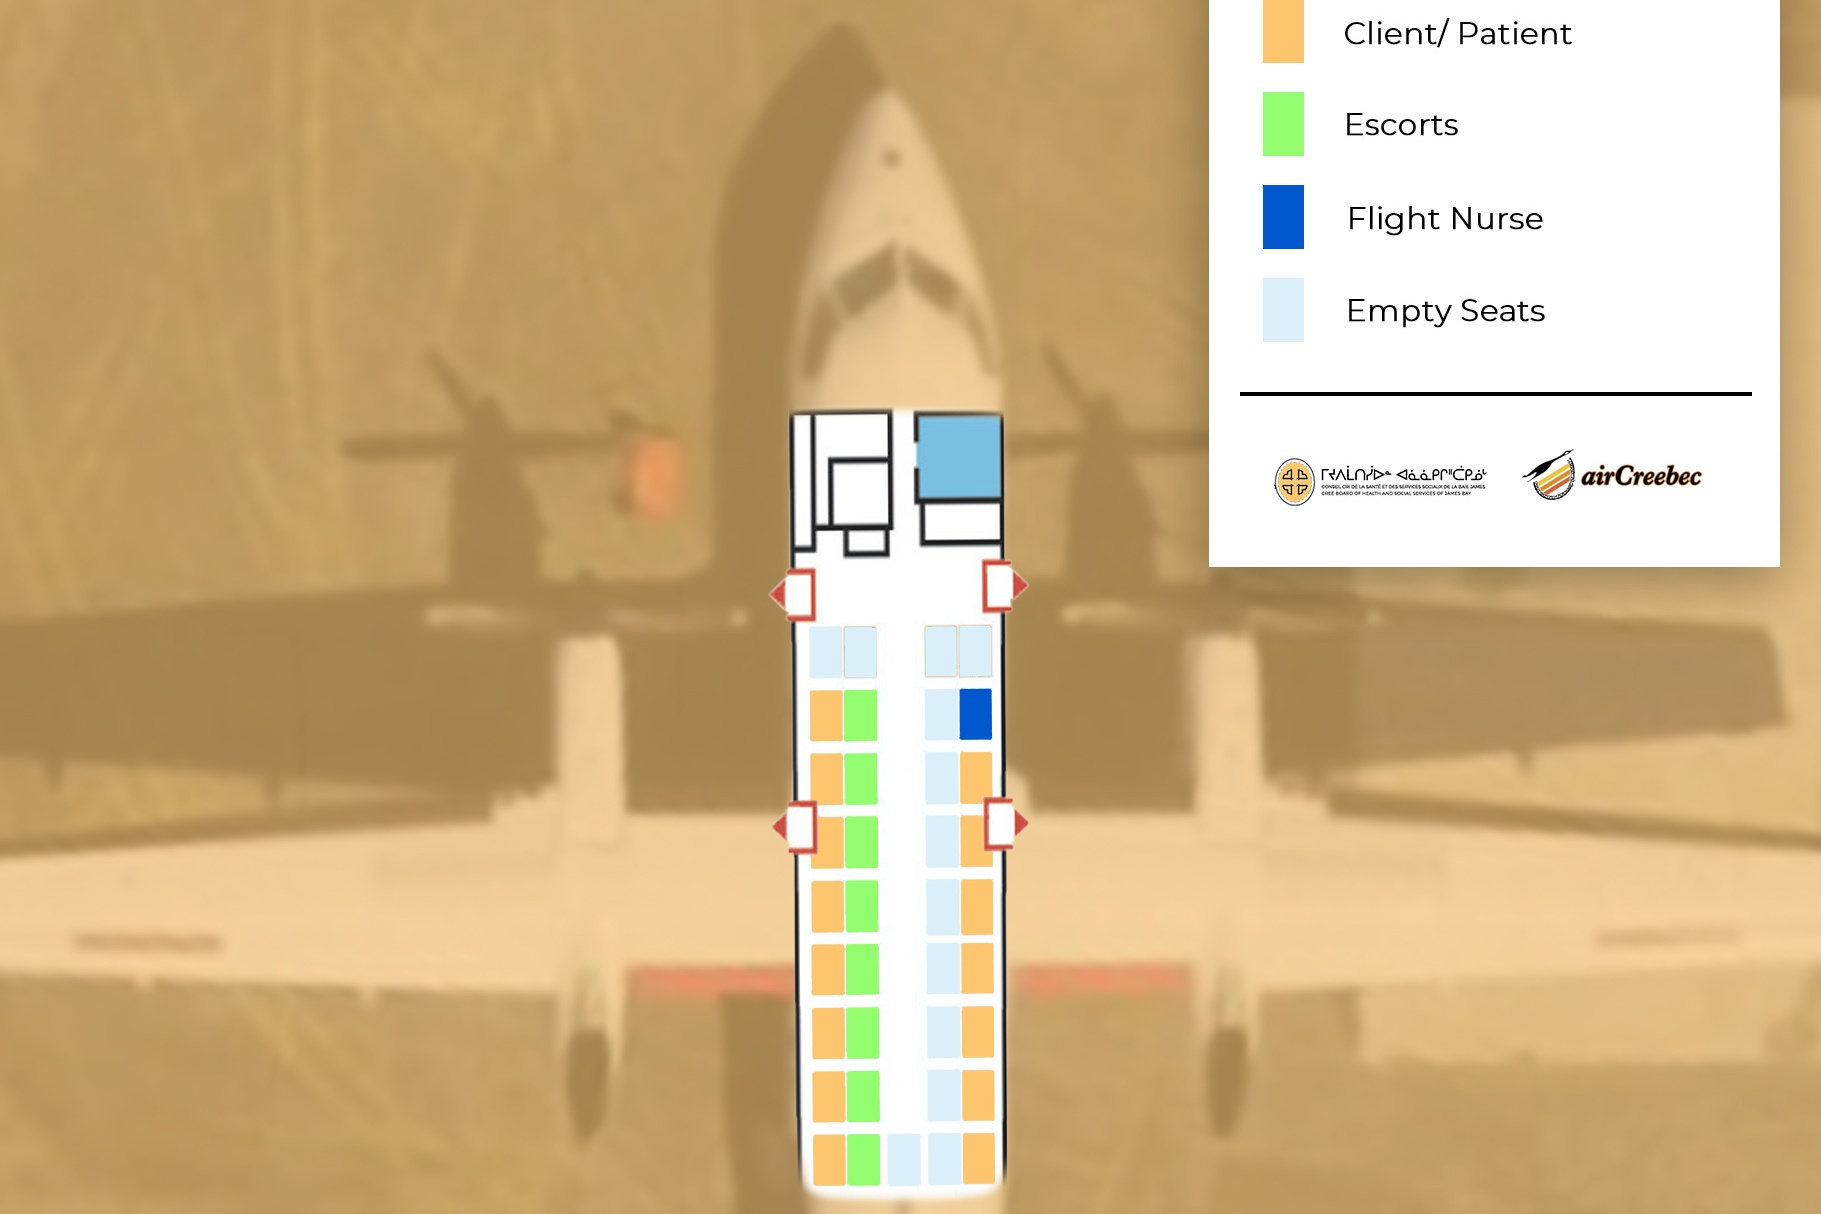 Seat map showing where to sit on plane during COVID-19